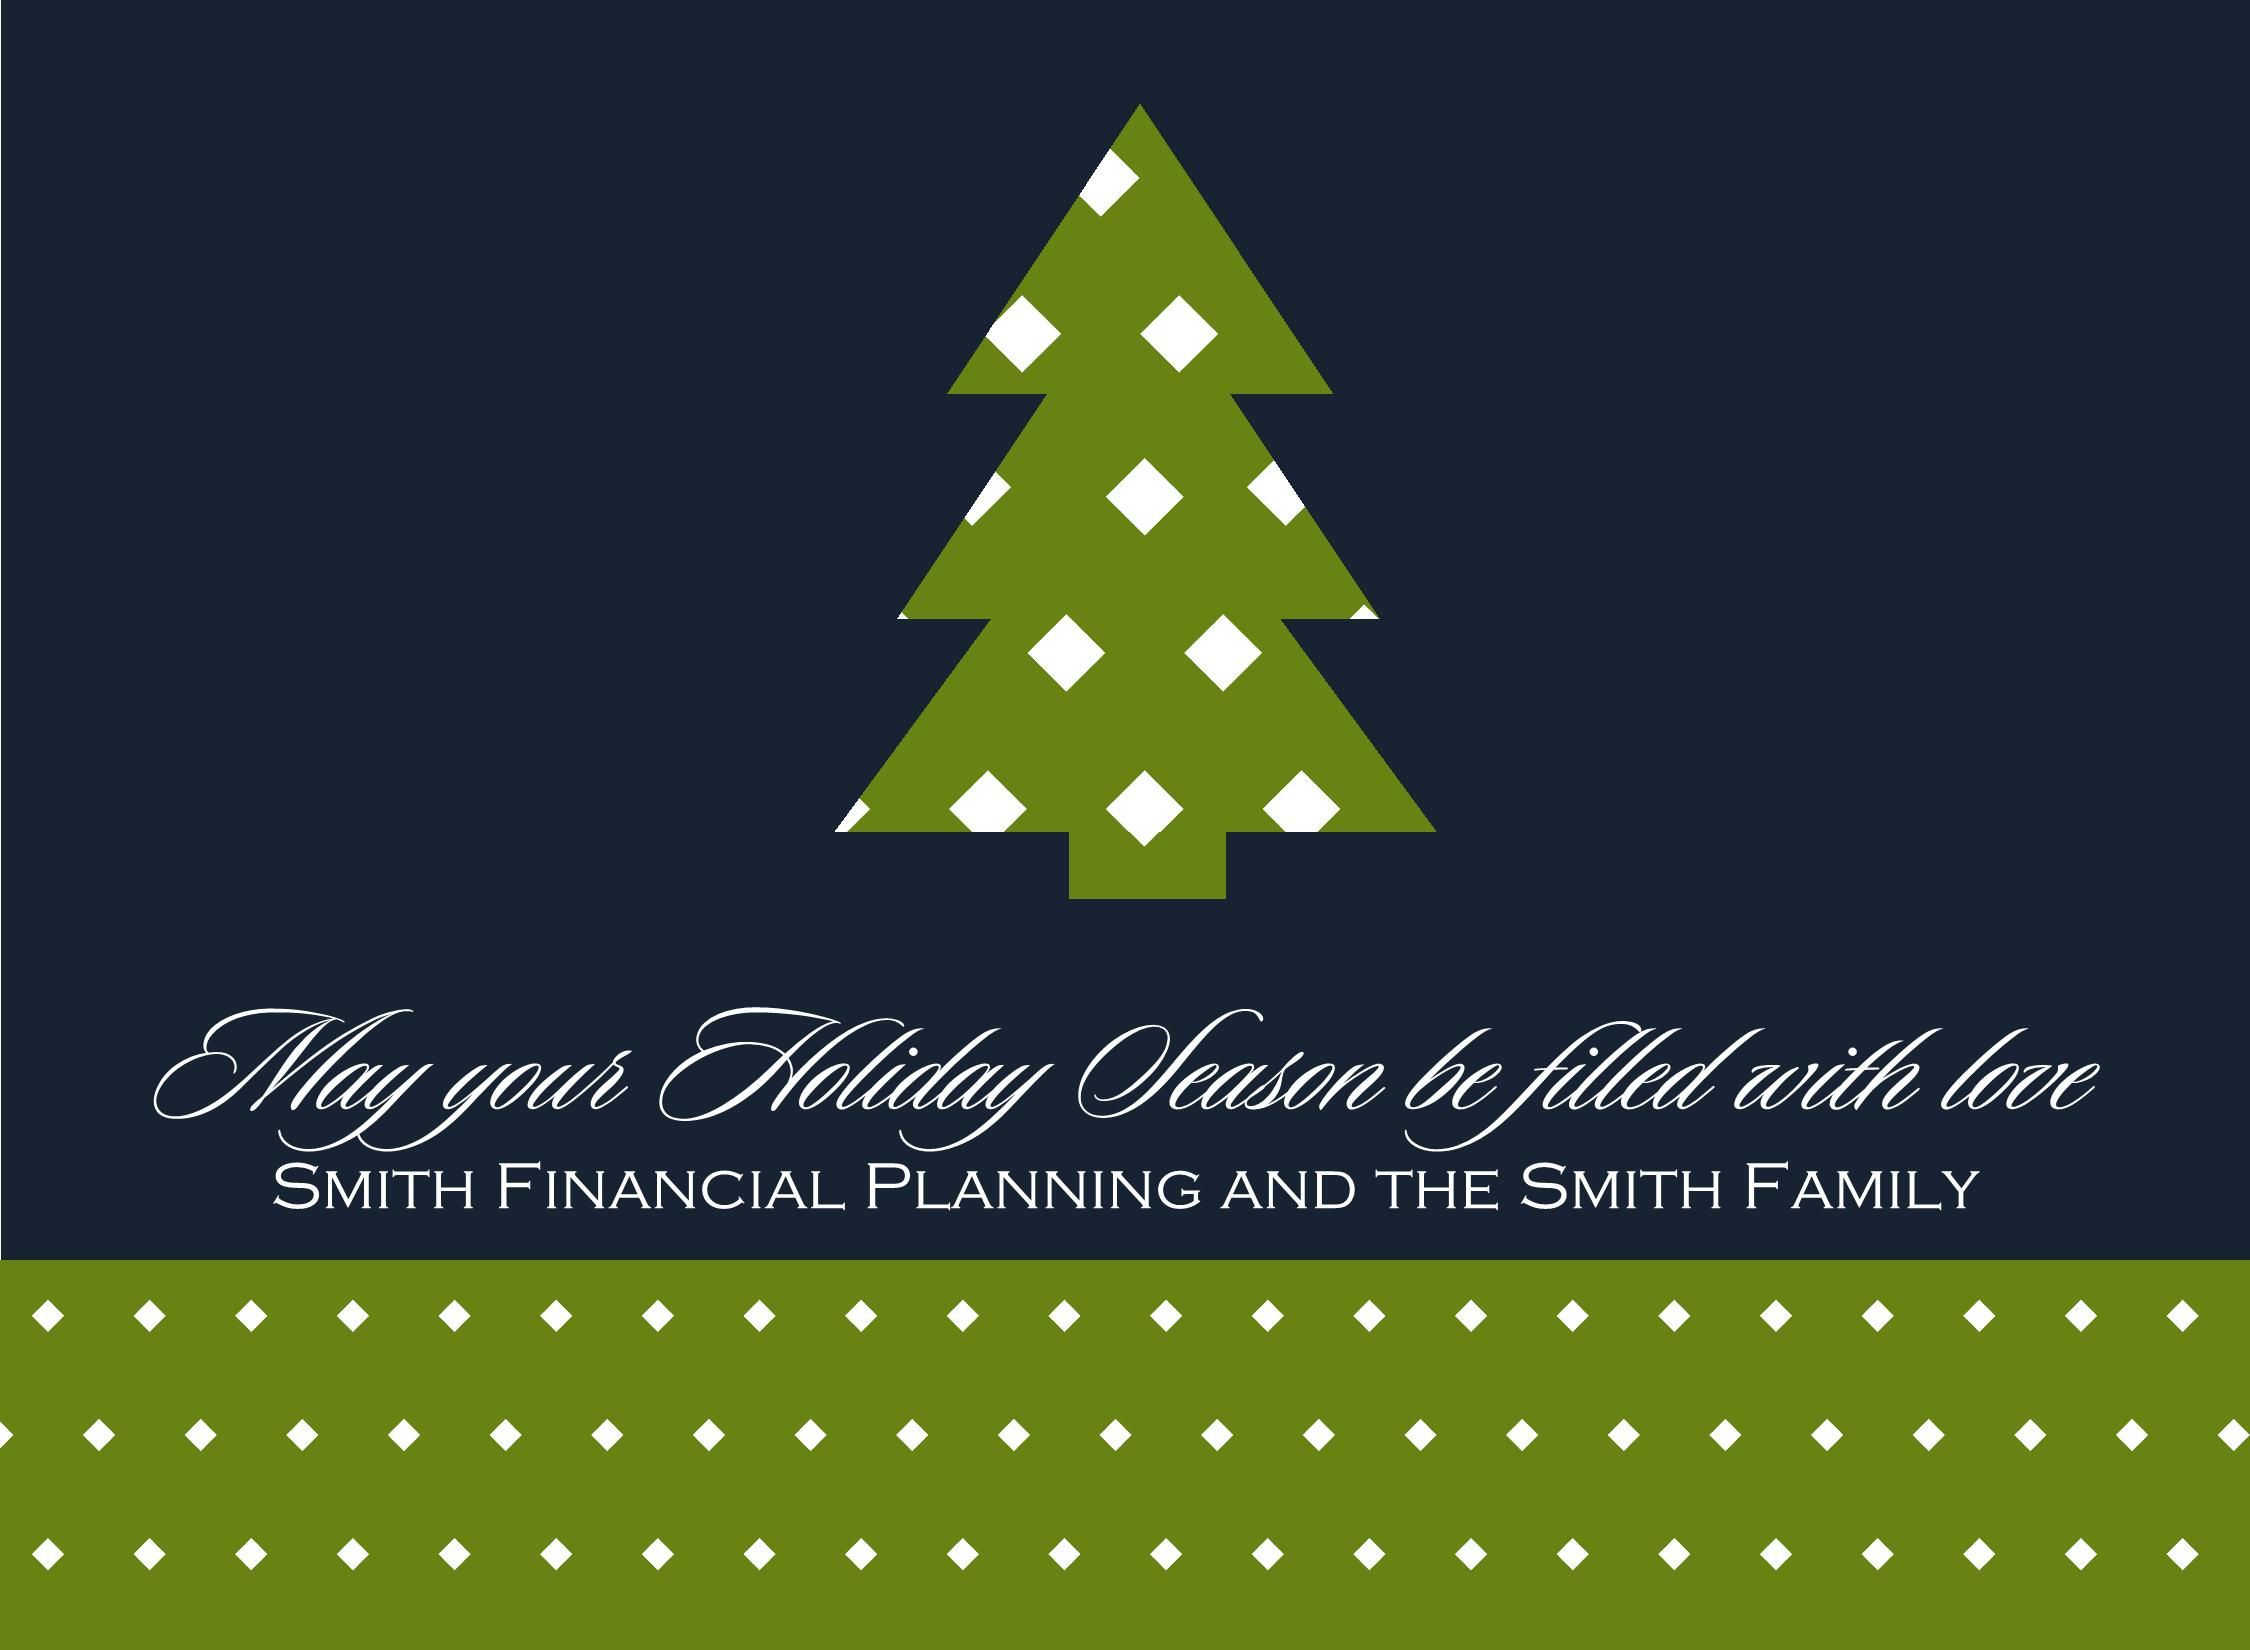 Business Xmas card | Professional Xmas | Pinterest